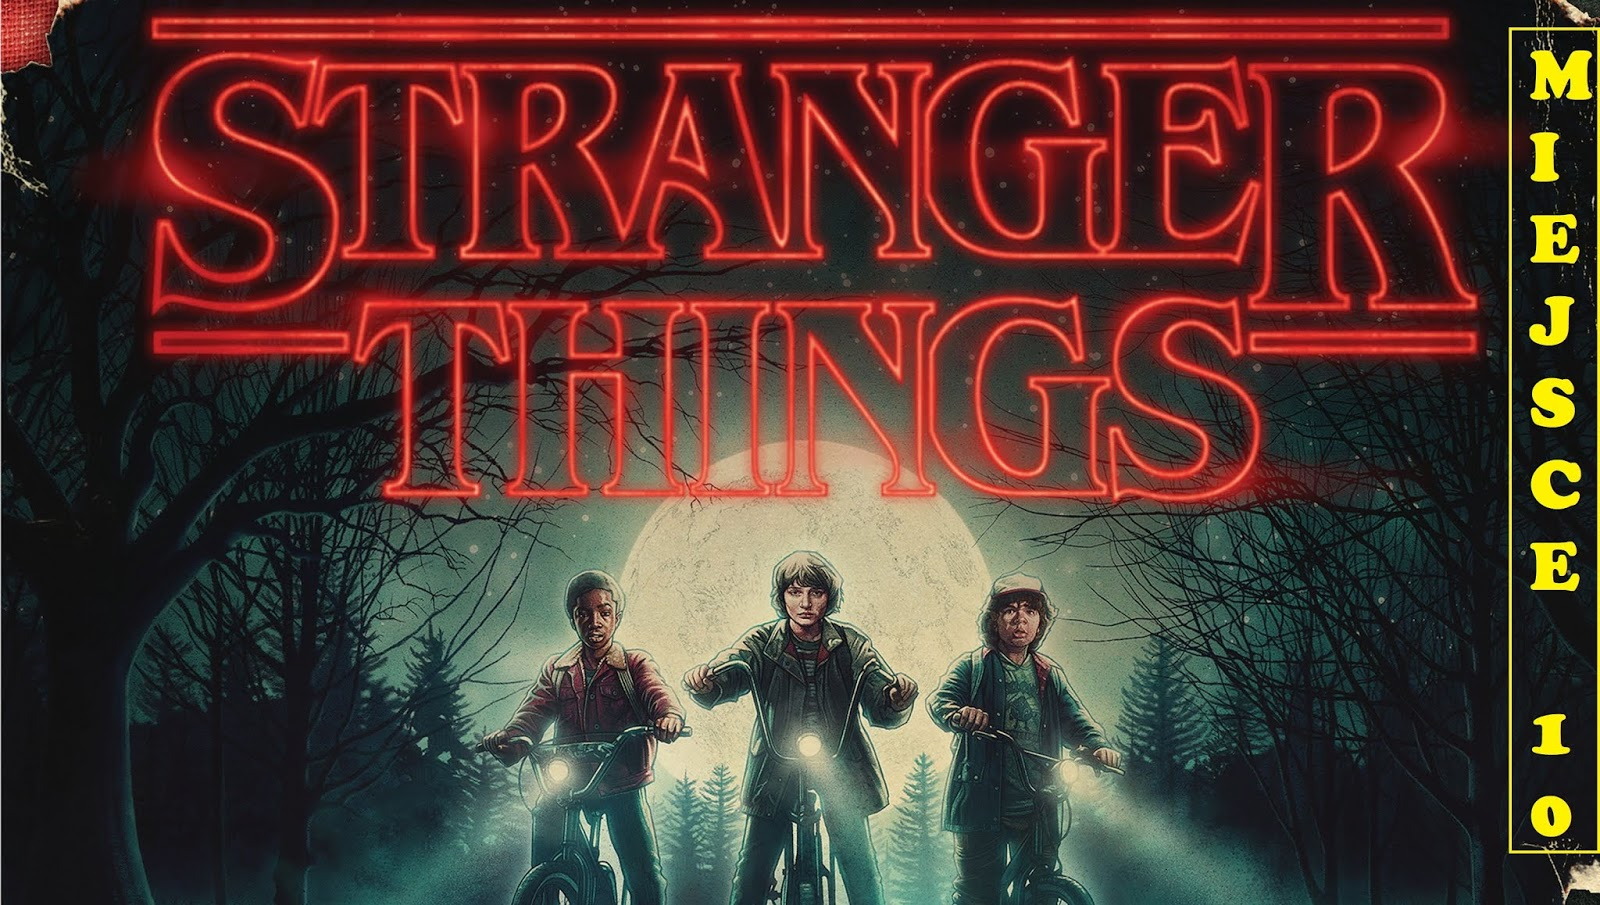 Stranger things serial netflix